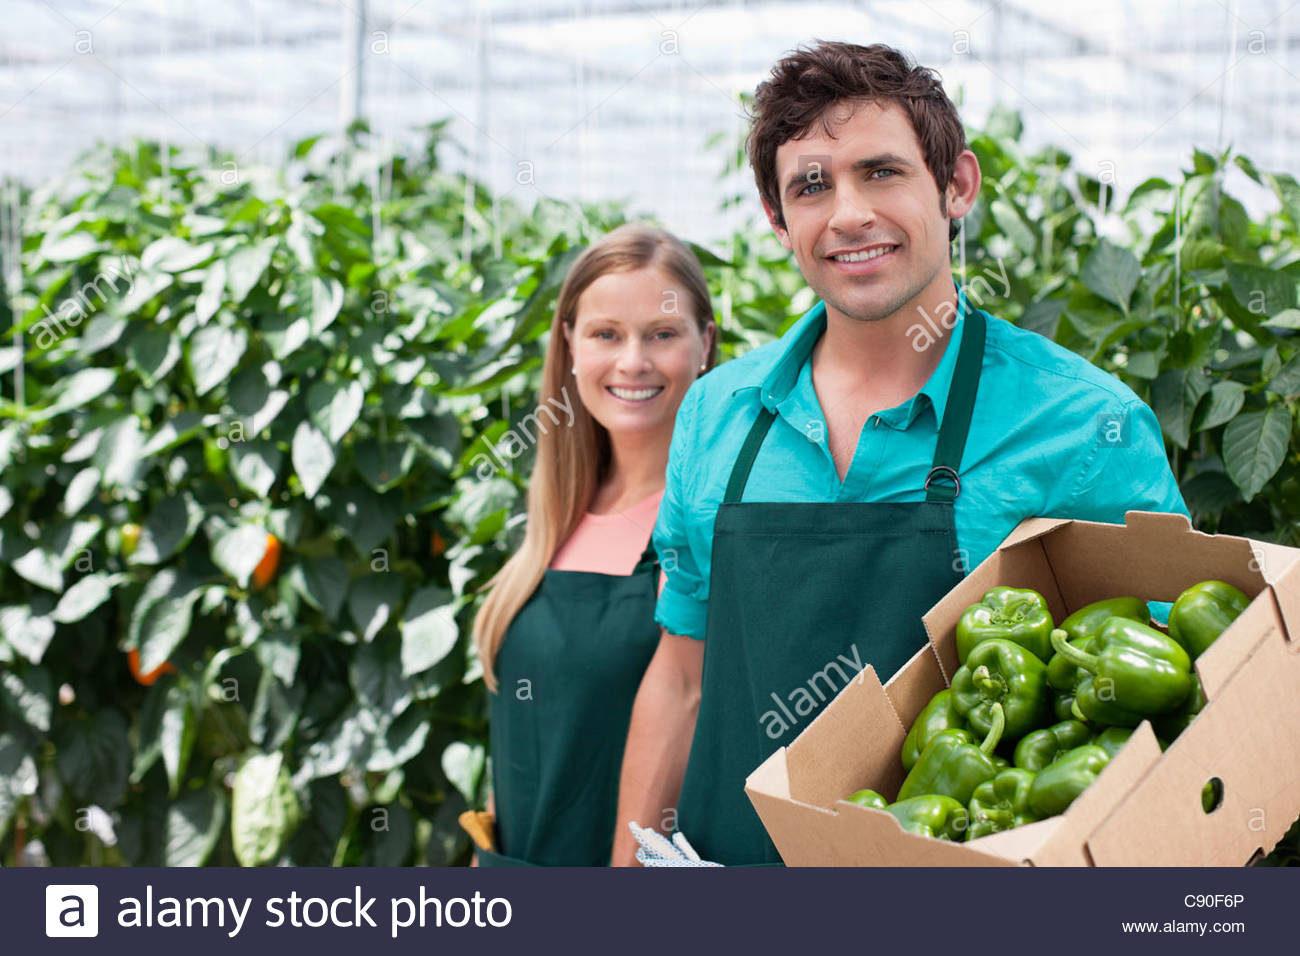 Workers with produce in greenhouse - Stock Image